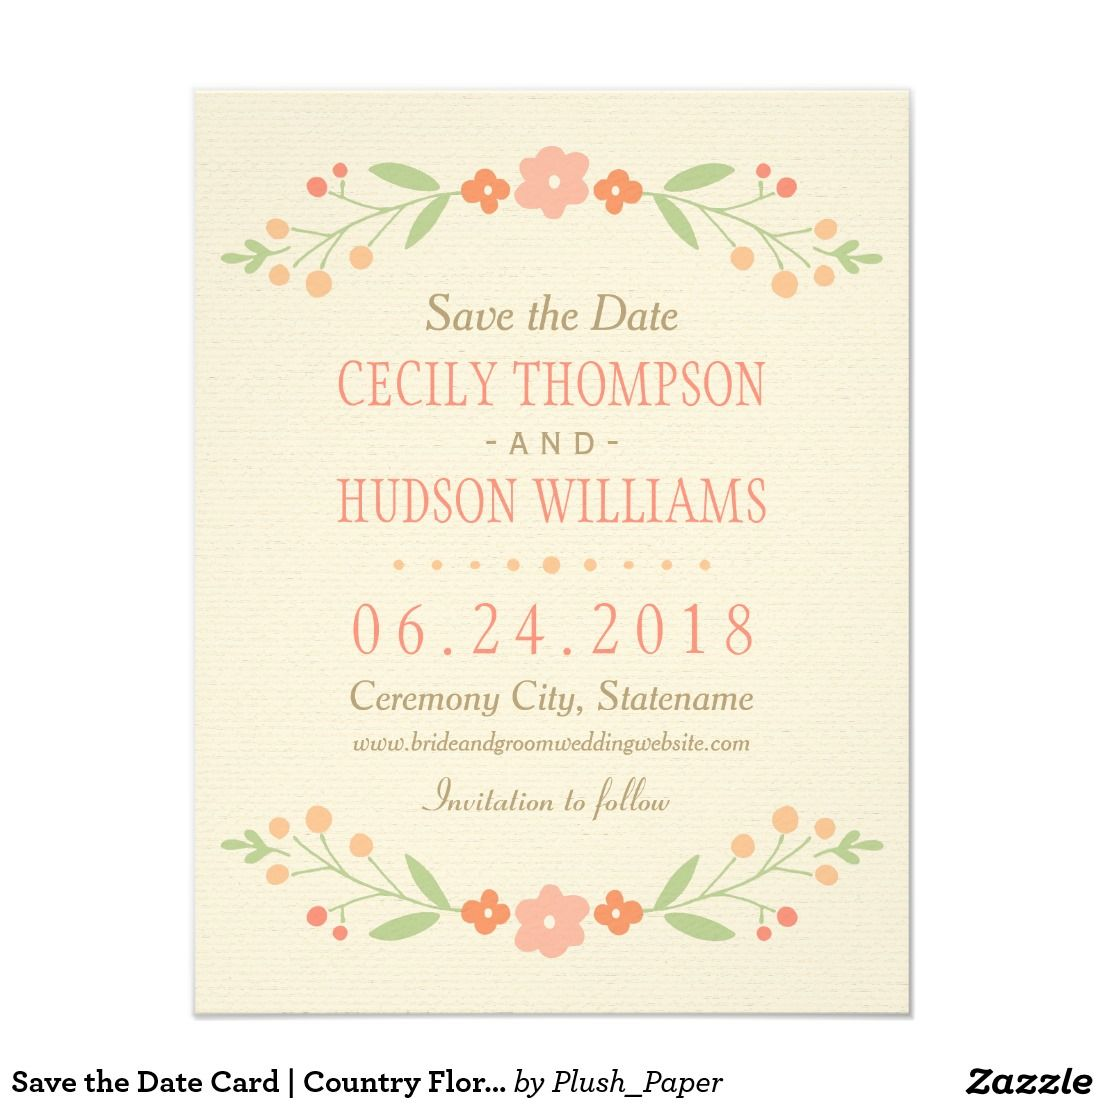 Save the Date Card | Country Floral Flower Peach Orange Pink Wedding Invitation Announcement